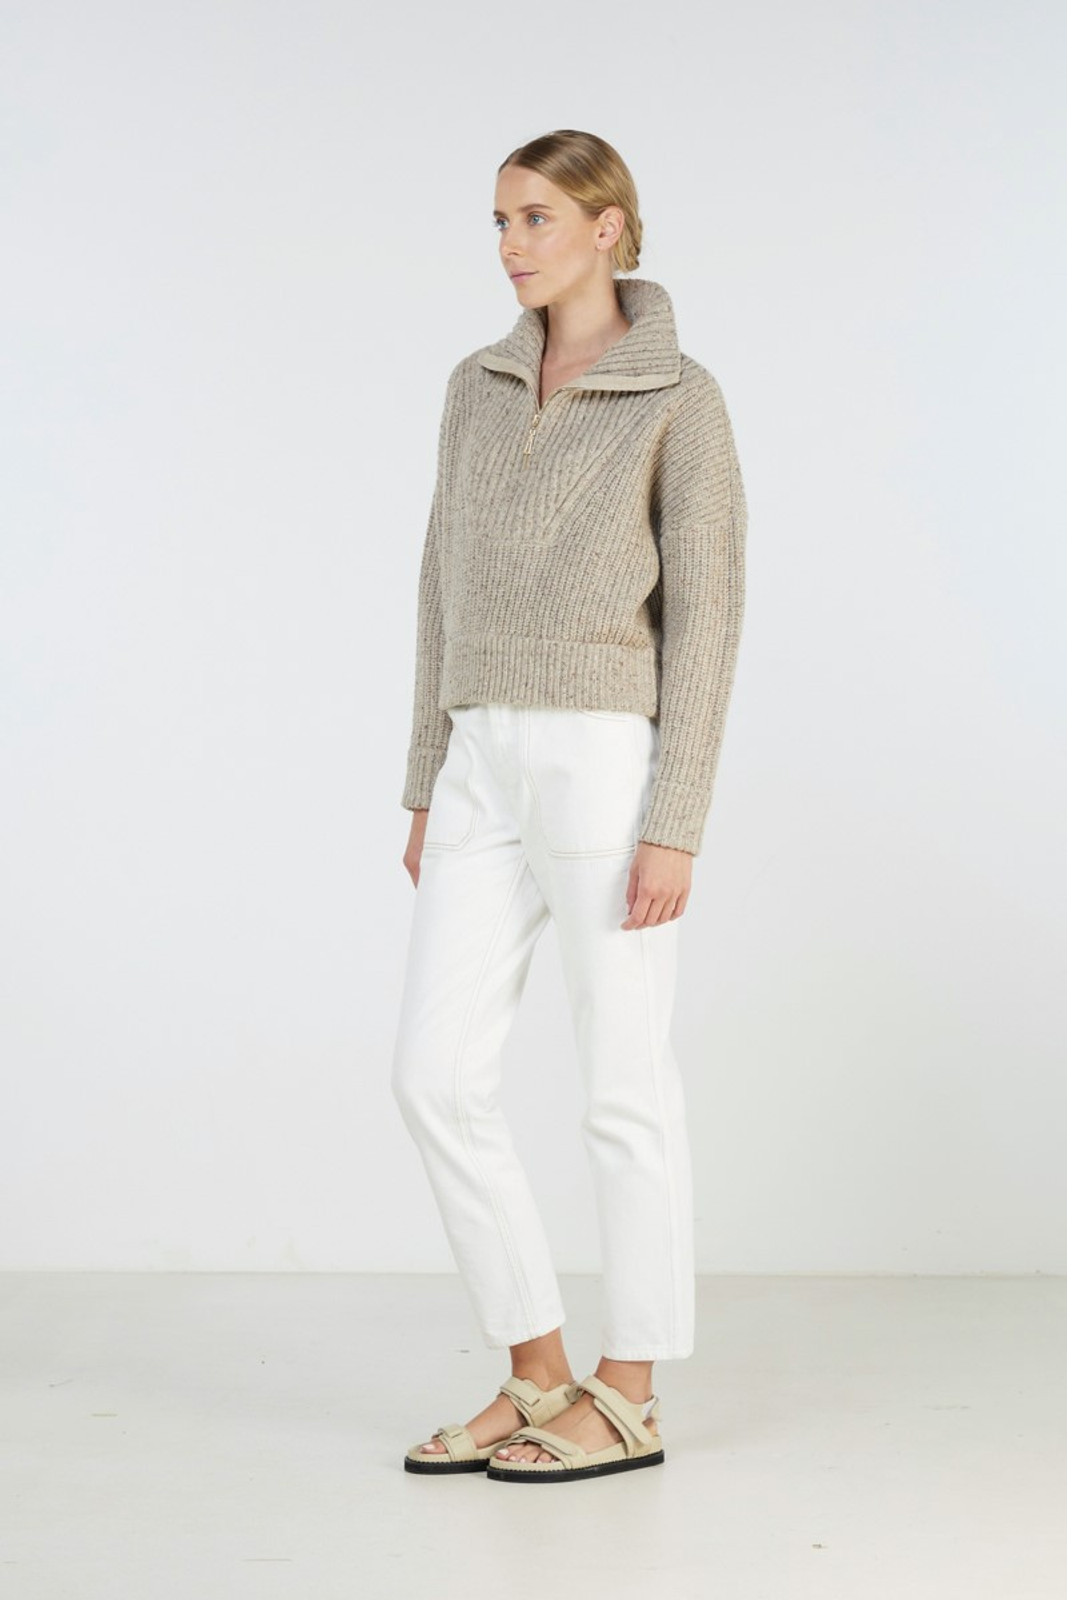 Elka Collective Covey Knit Neutrals  2